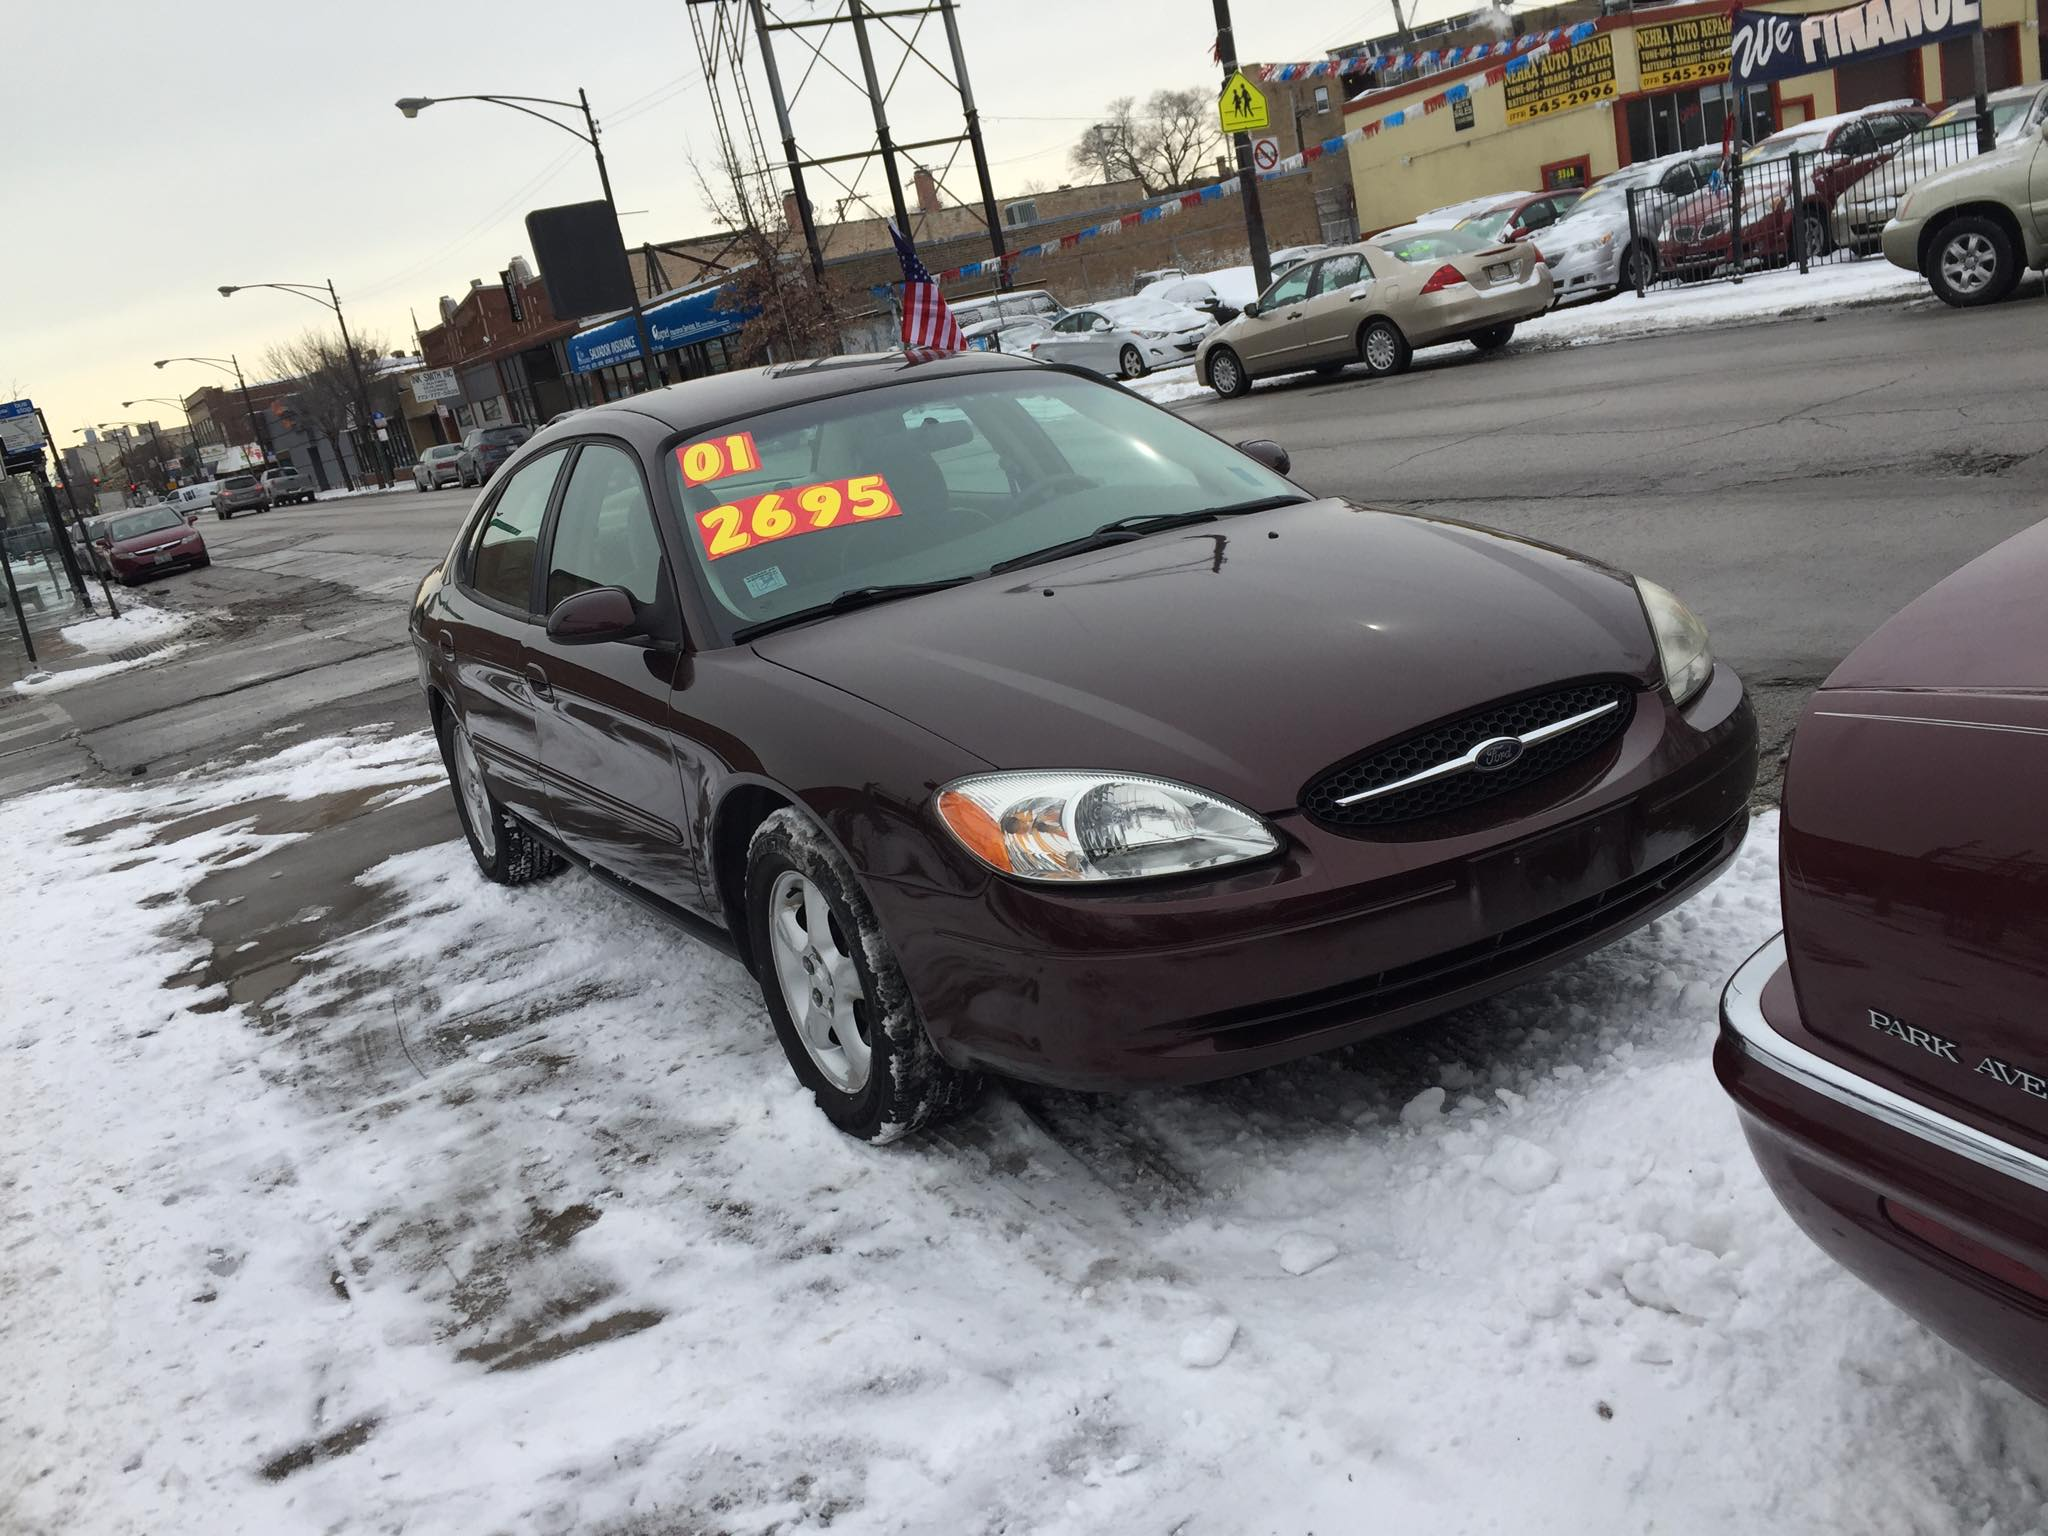 Sams Auto Sales Used Cars in Chicago 3377 N Milwaukee 773